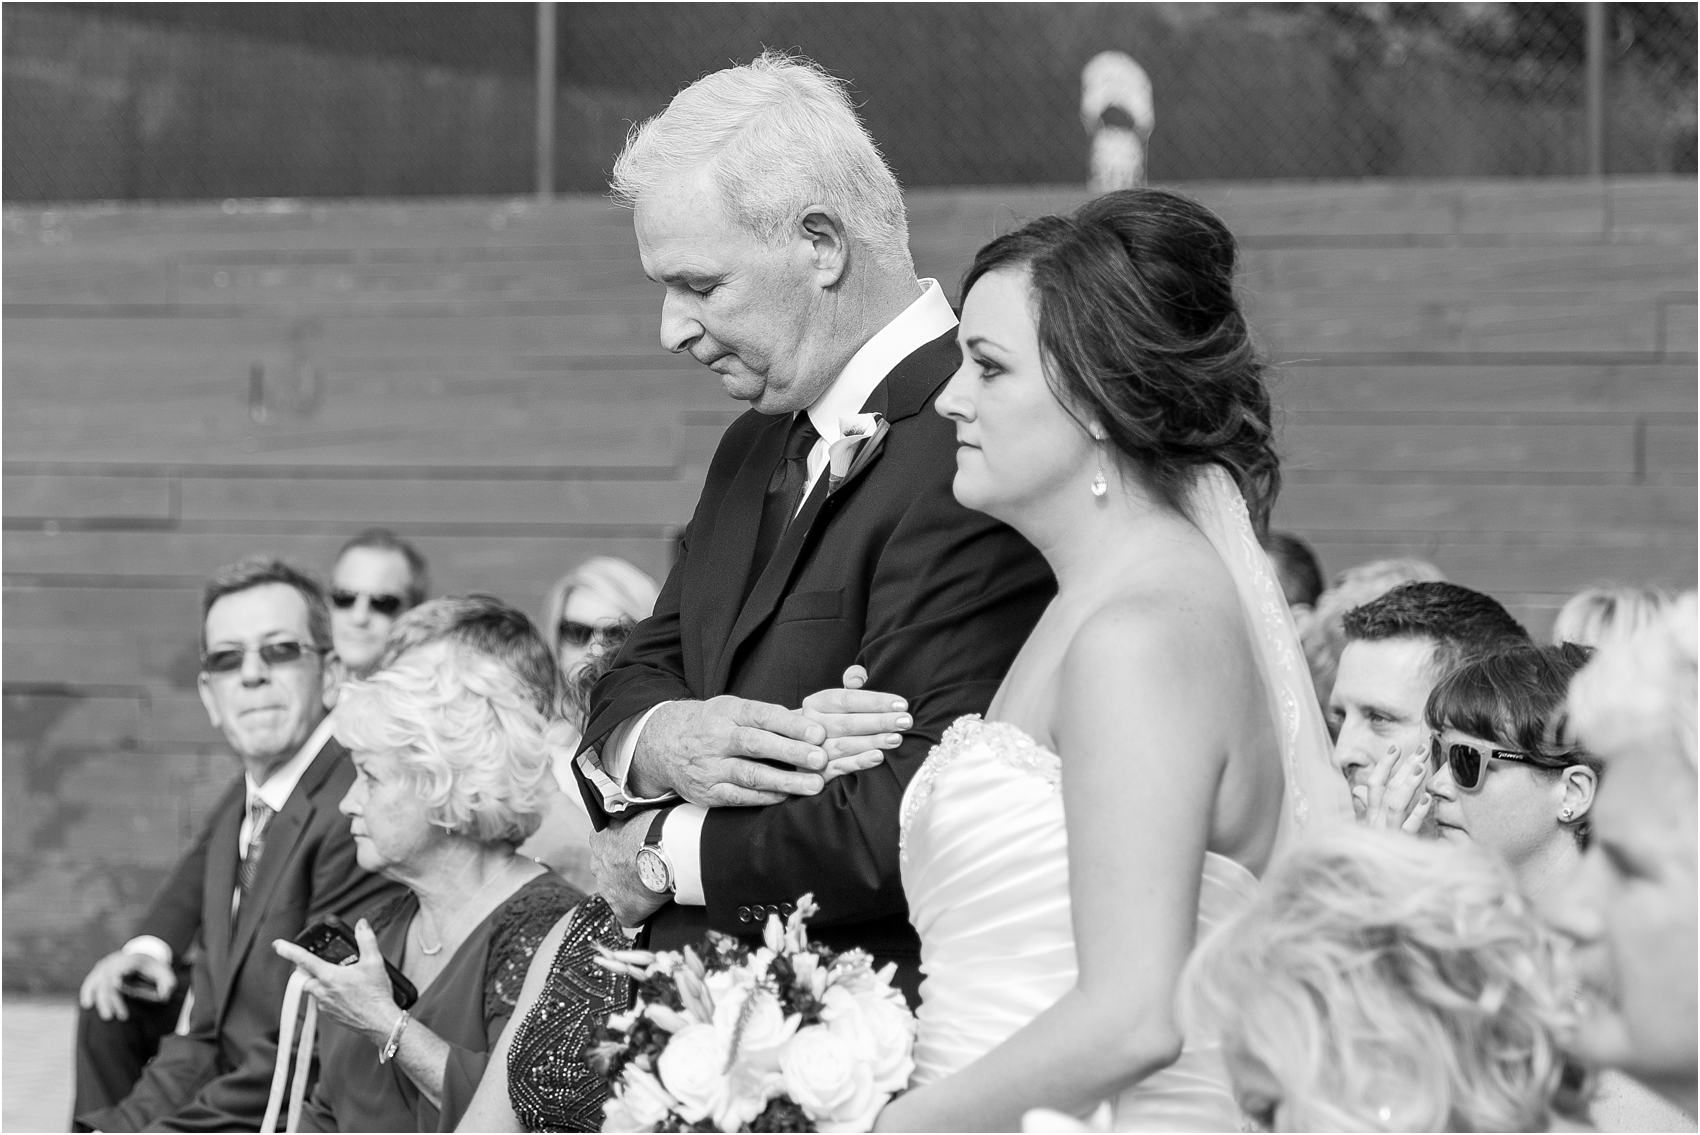 emotional-candid-romantic-wedding-photos-in-detroit-chicago-northern-michigan-by-courtney-carolyn-photography_0012.jpg